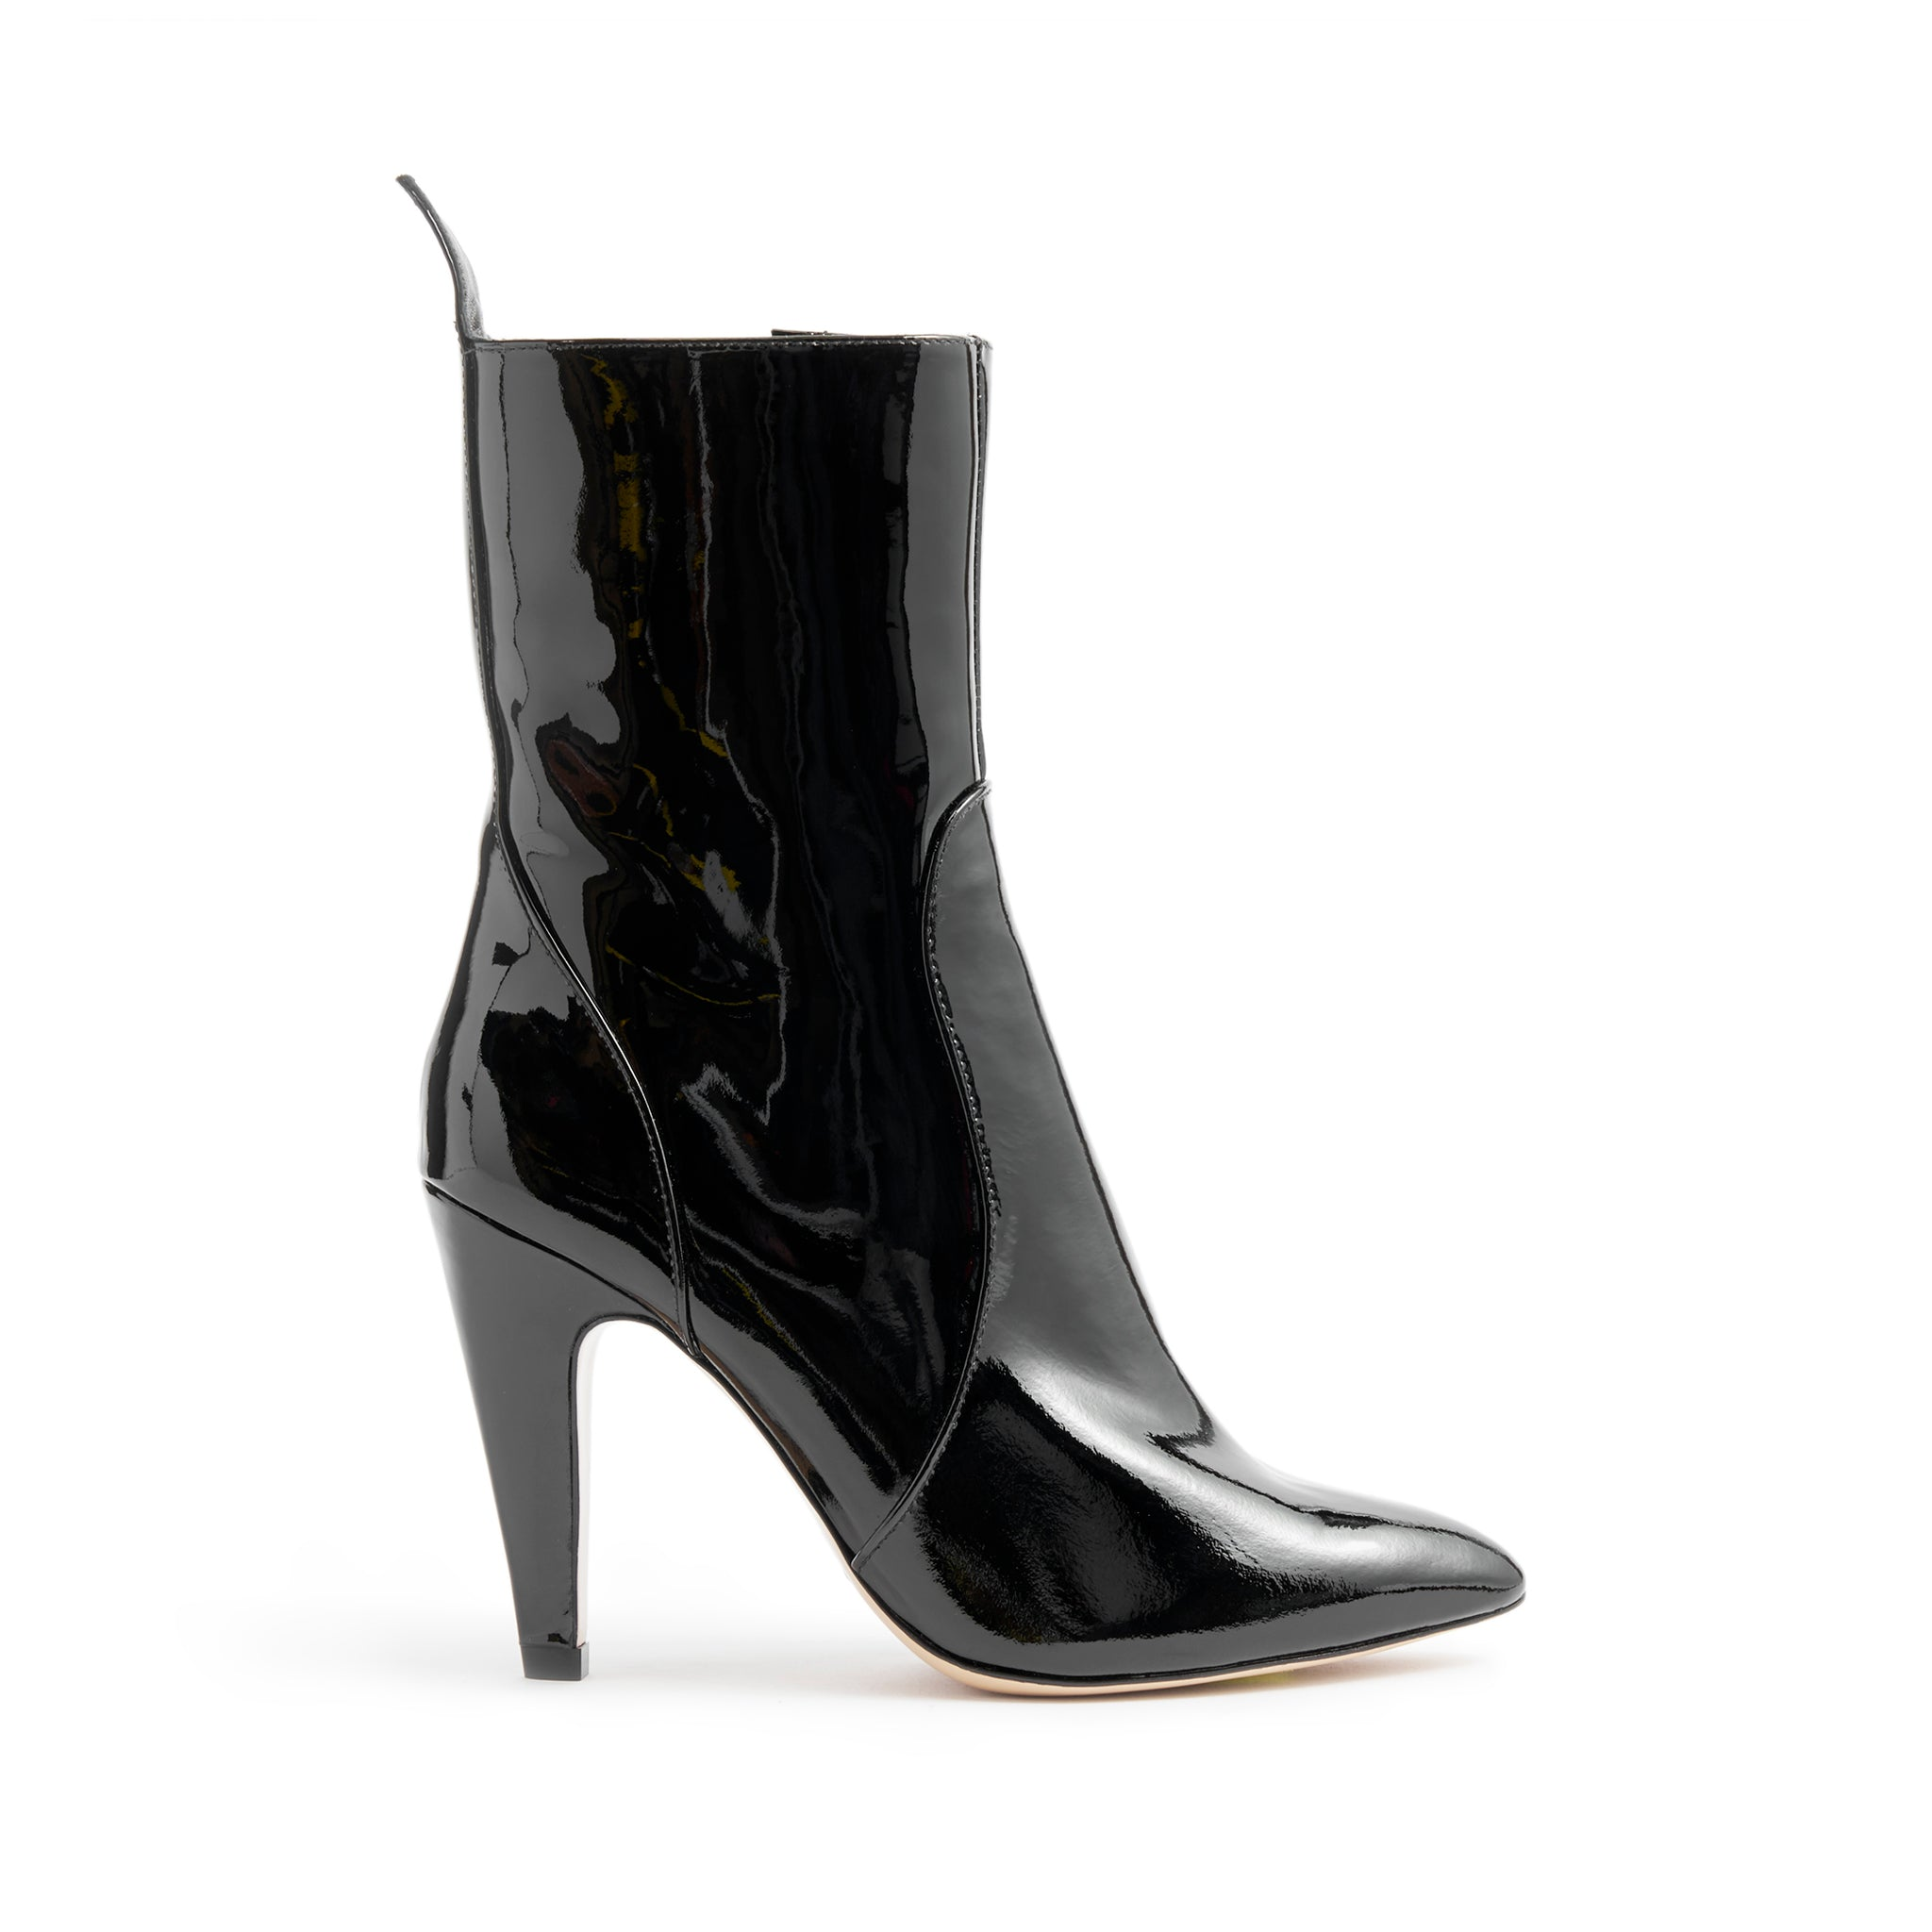 Kaila Booties Black Patent Leather